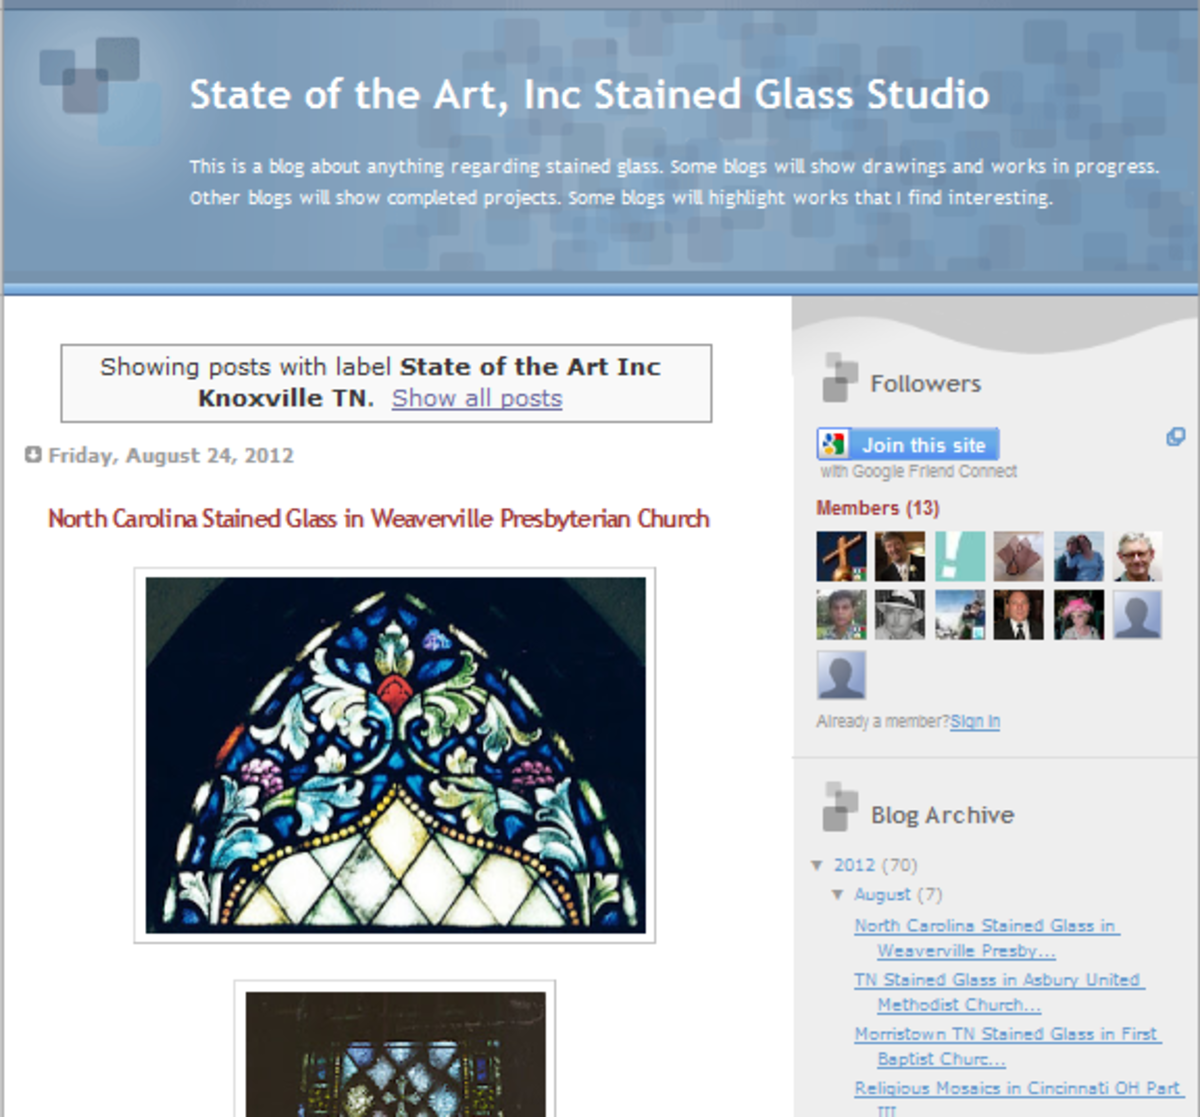 This is an awesome resource for venues, churches and places with stained glass windows